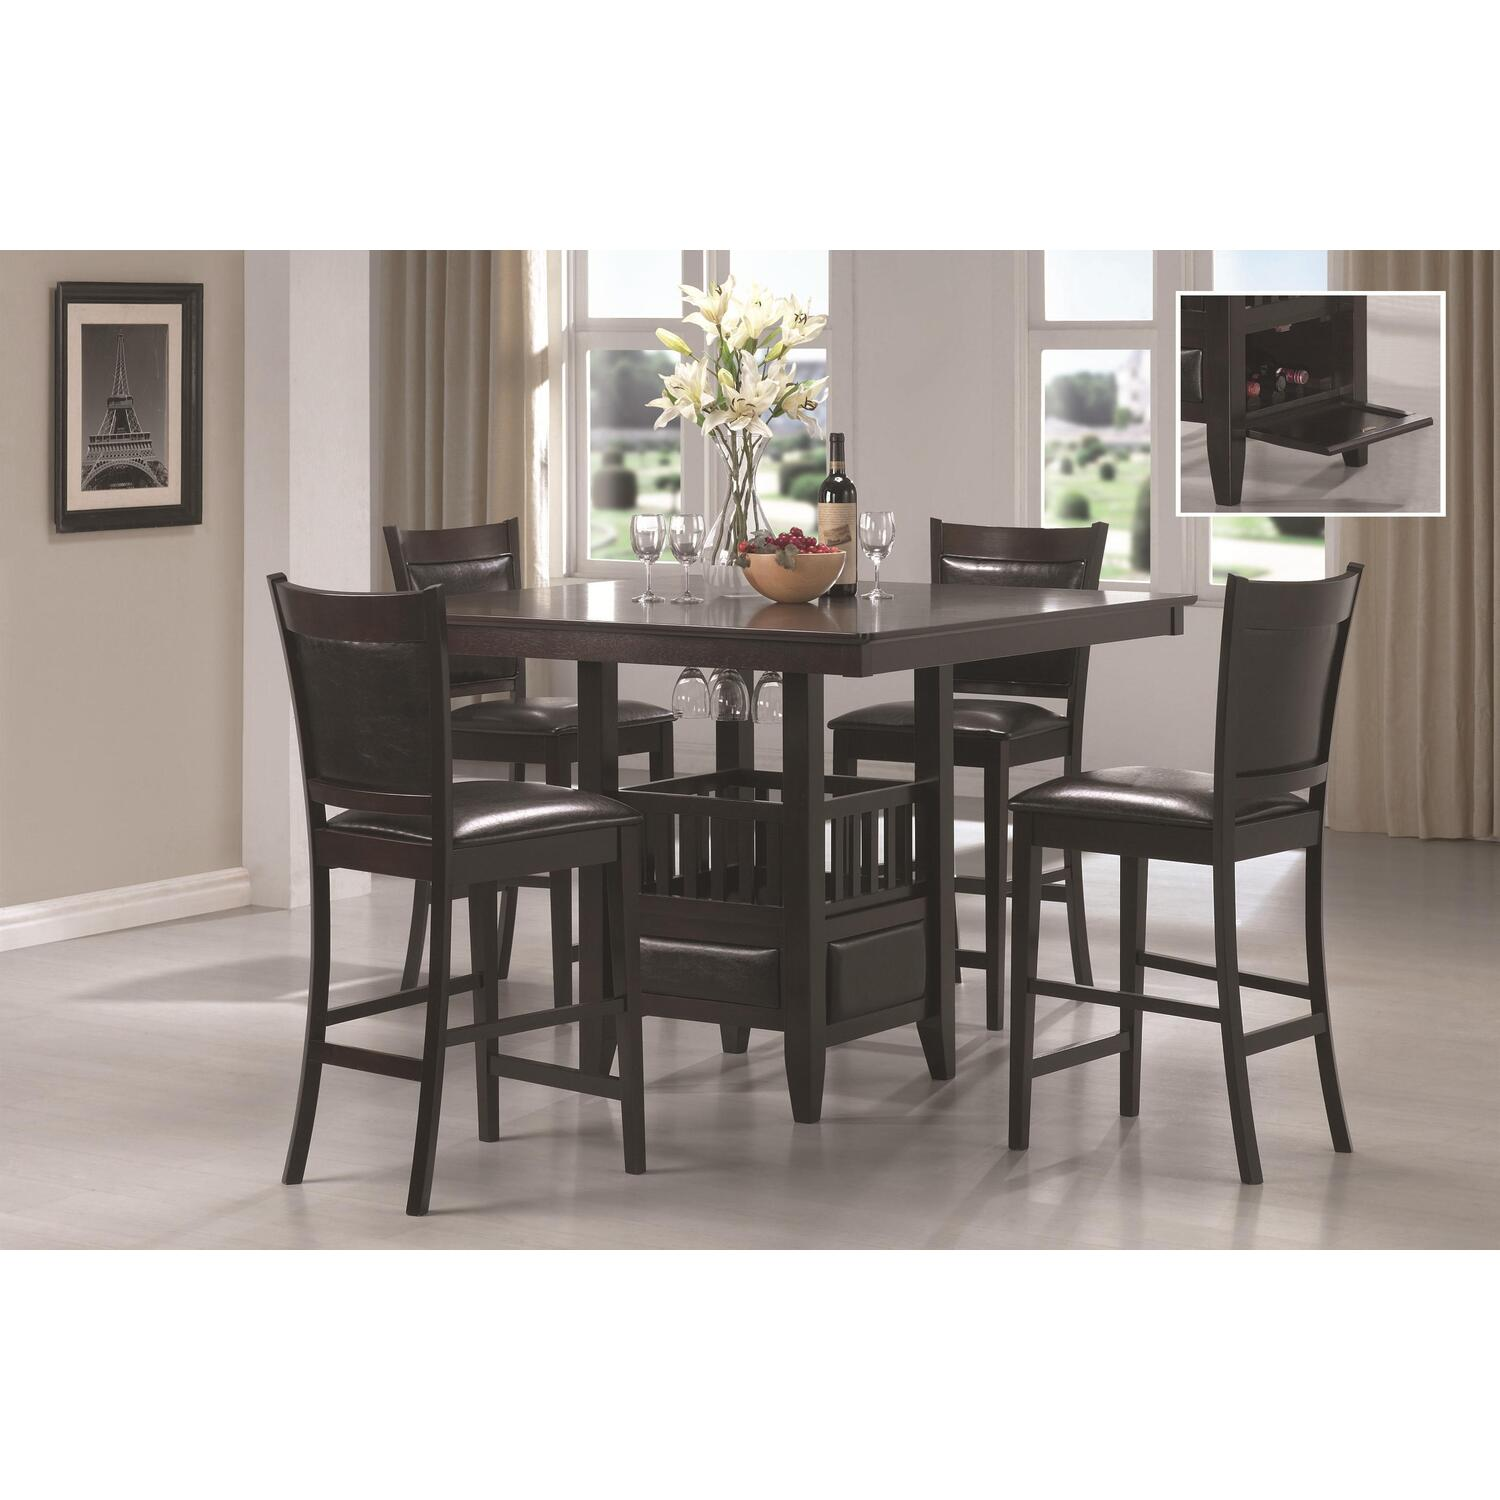 Hollywood Home Jaden Square Counter Height 5 Piece Dining